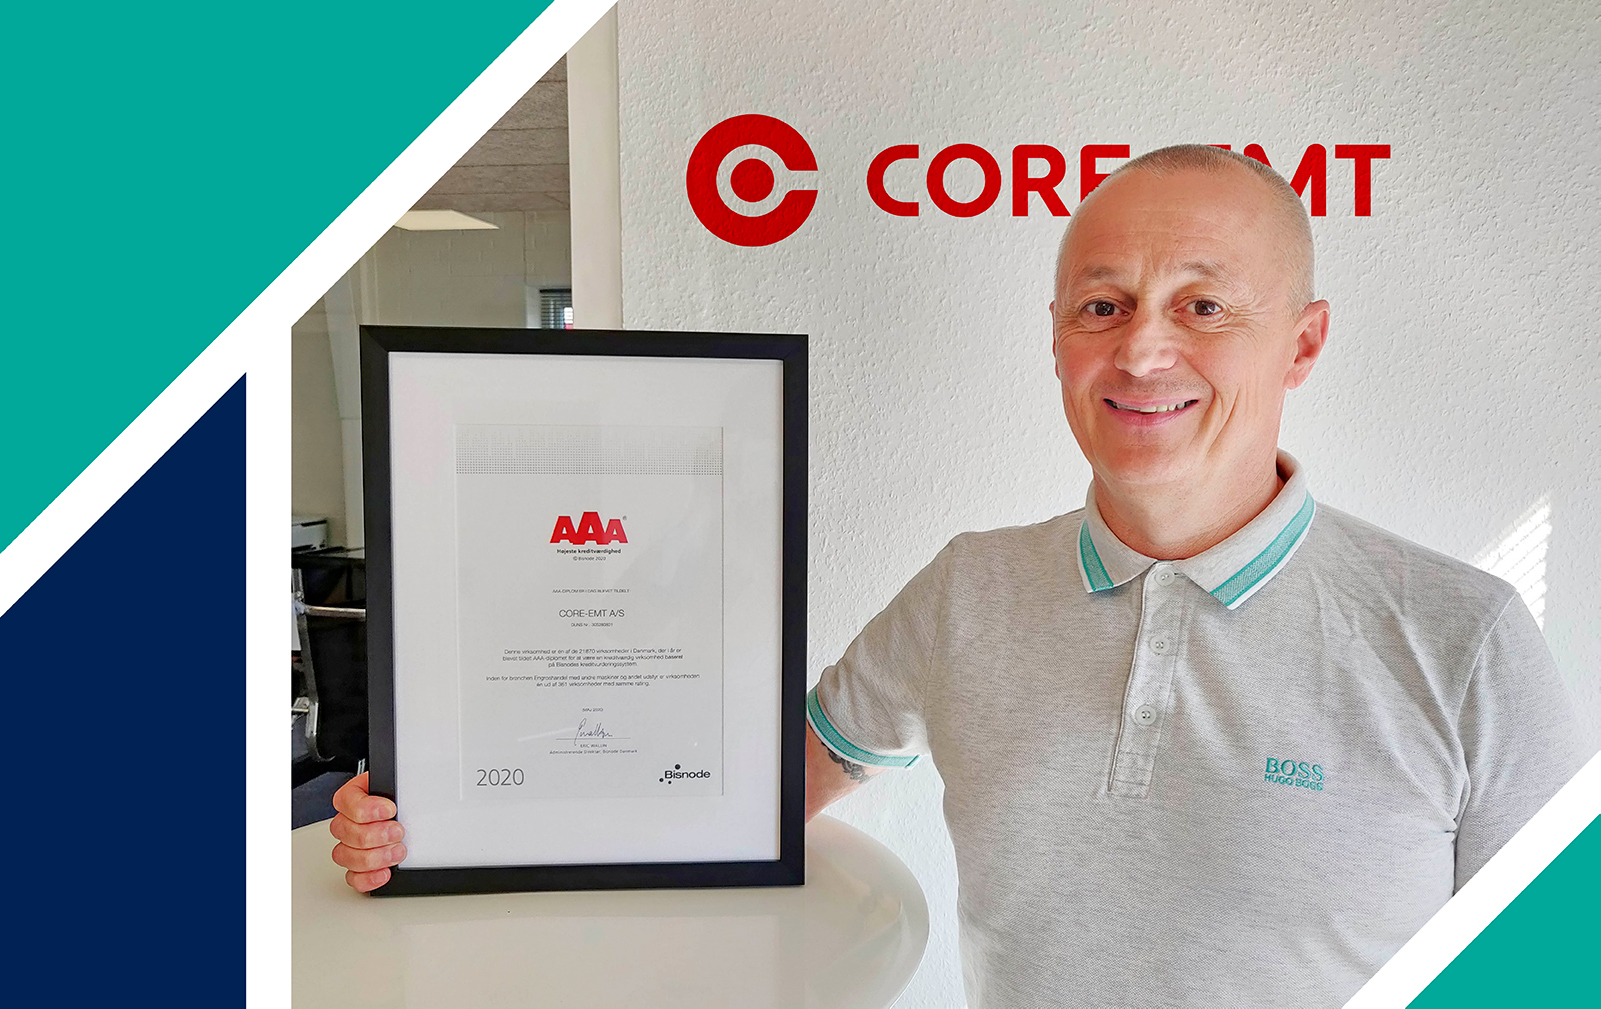 CORE-emt have the highest creditworthiness